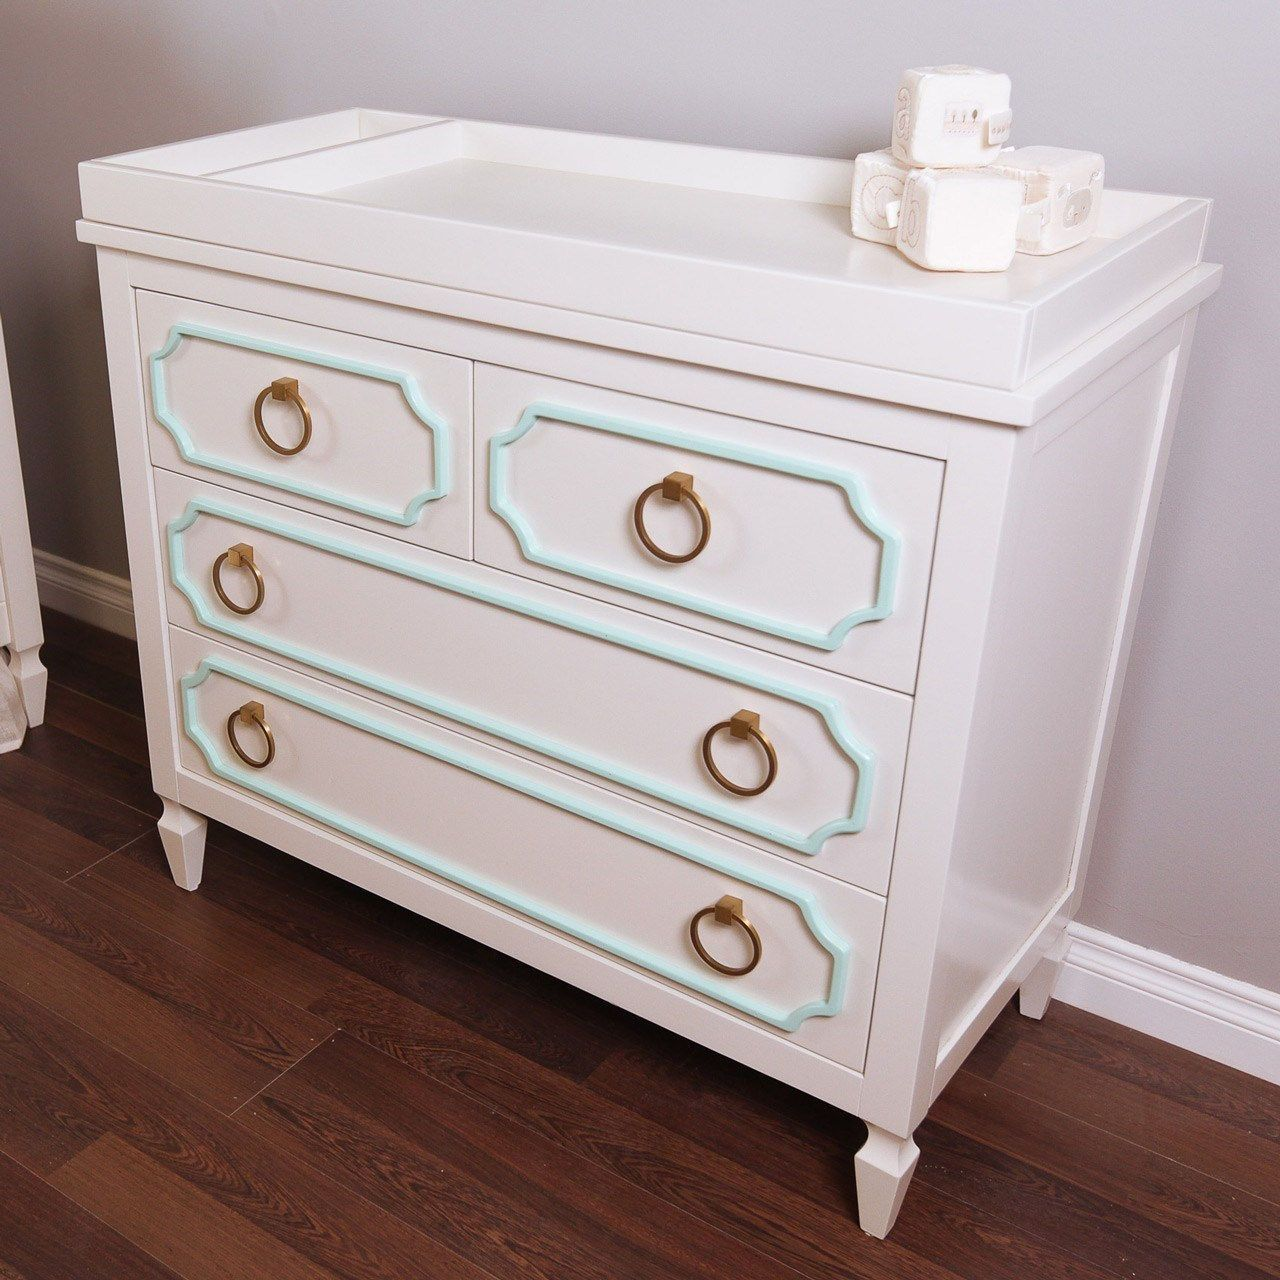 Newport Cottages Npc3260 9950 Wh Mt Knb09 Beverly 4 Drawer